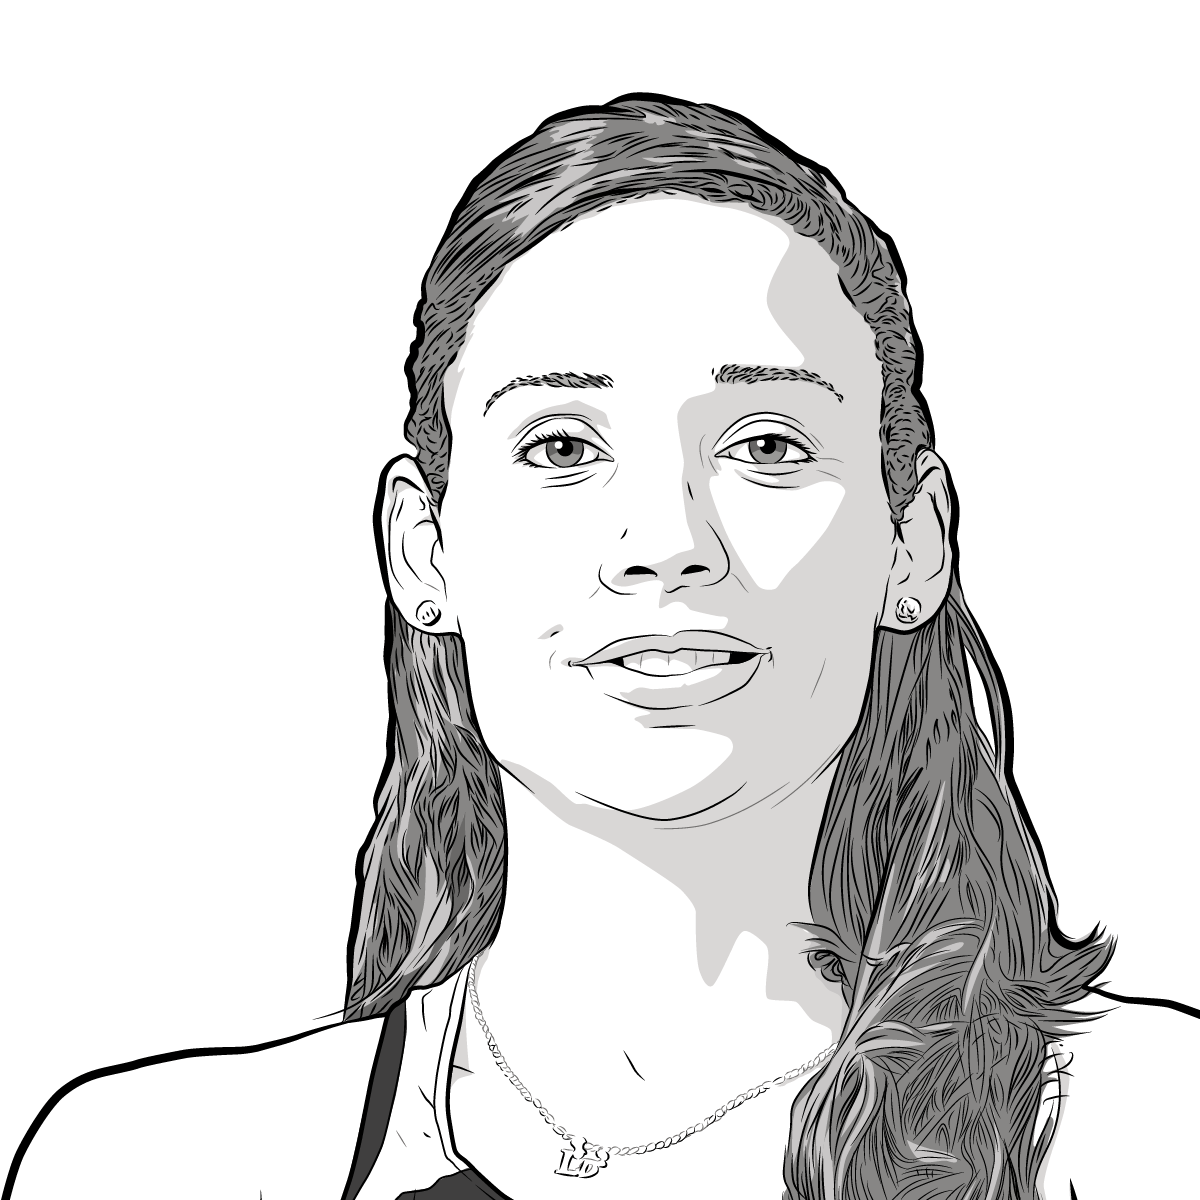 Athlete Portrait of Lolo Jones, illustration by Max Hancock